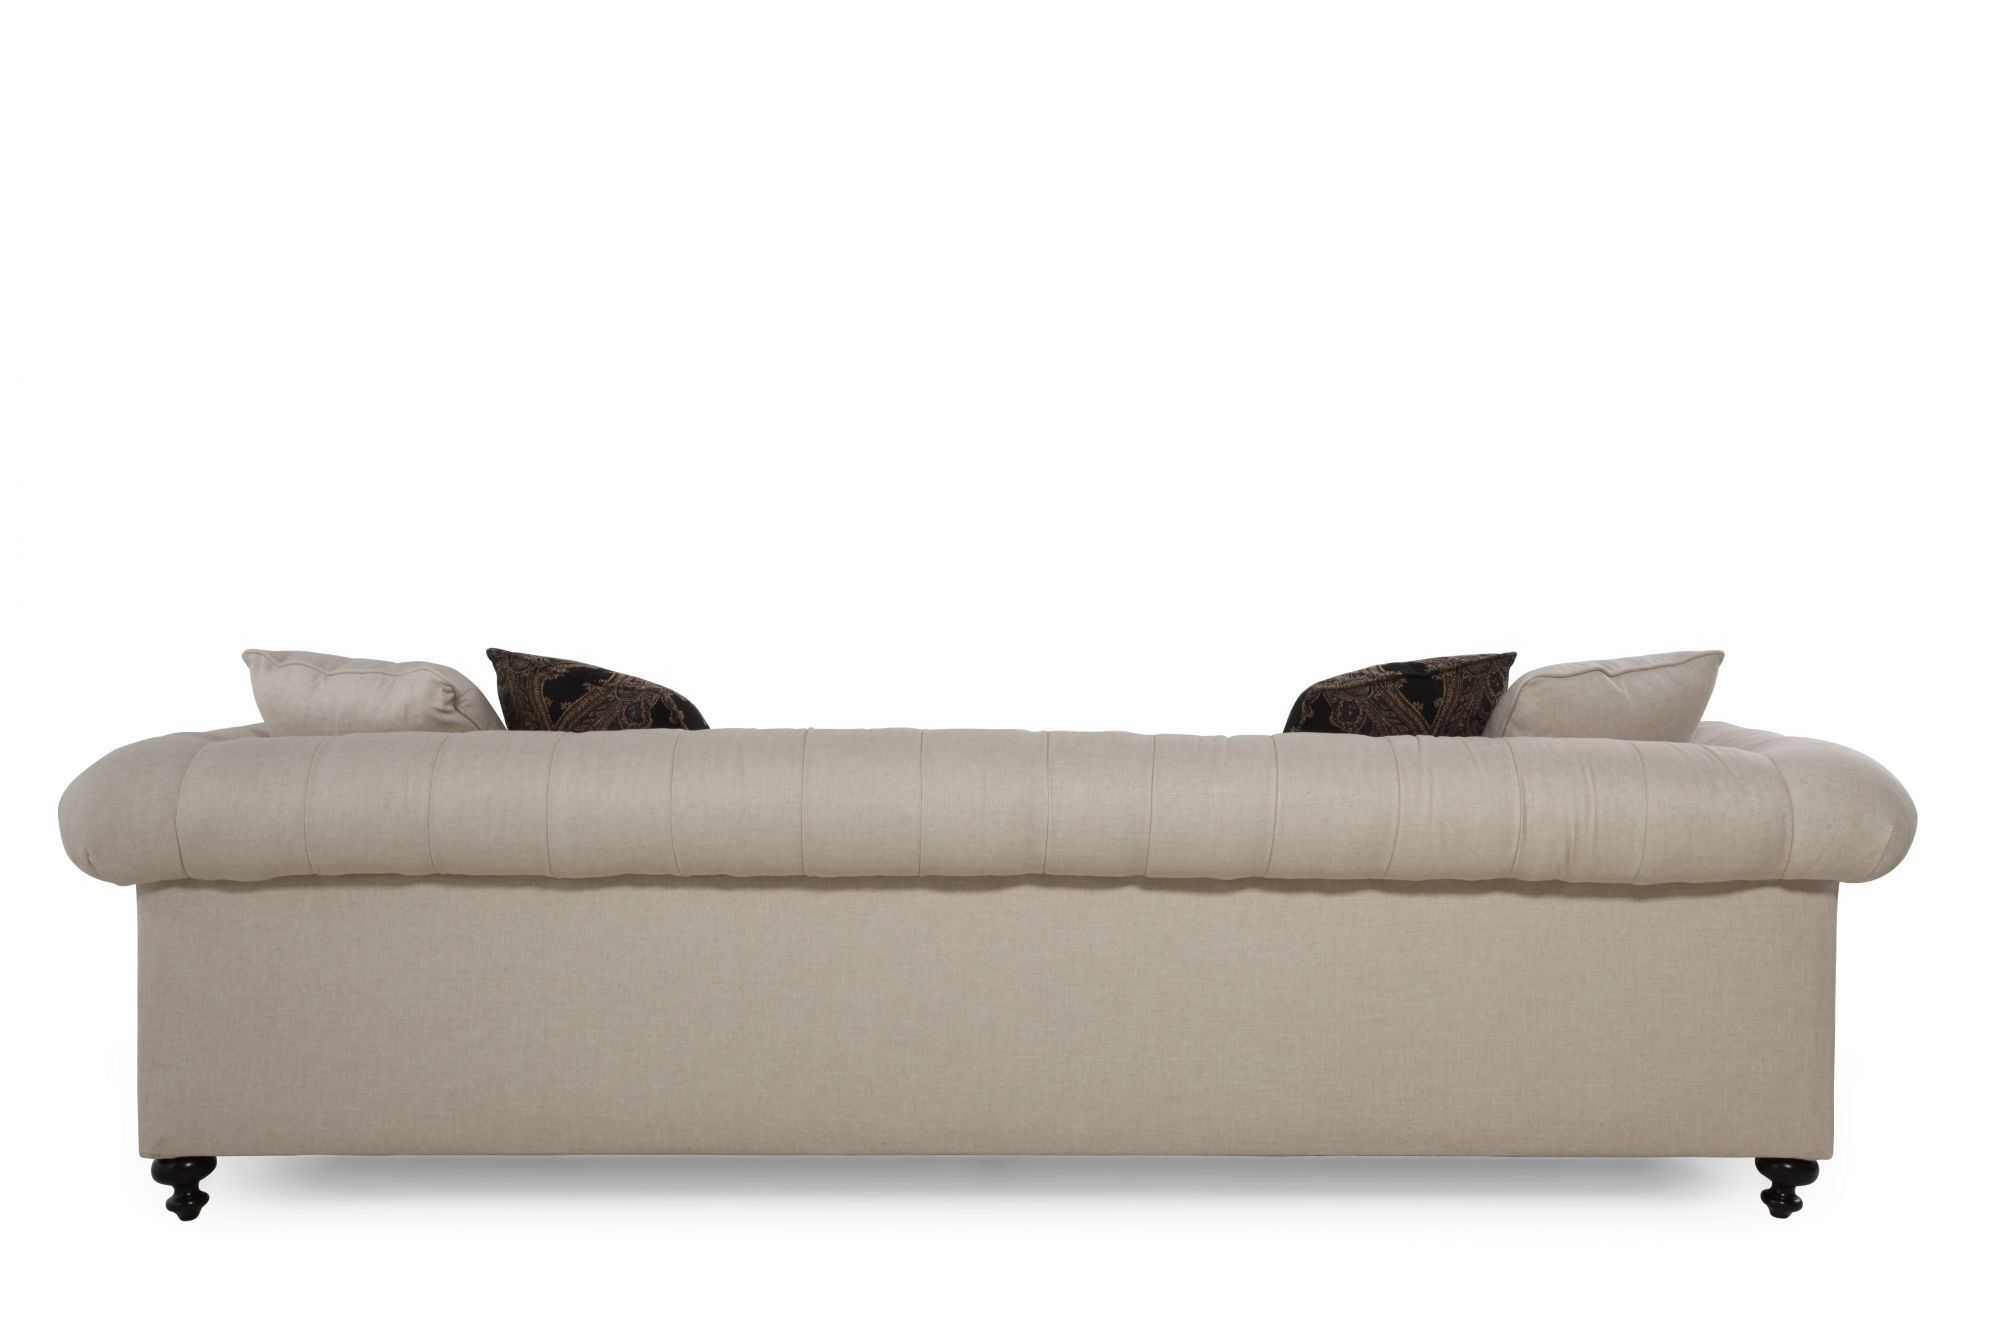 bernhardt riviera large sofa the brick canada tables mathis brothers furniture